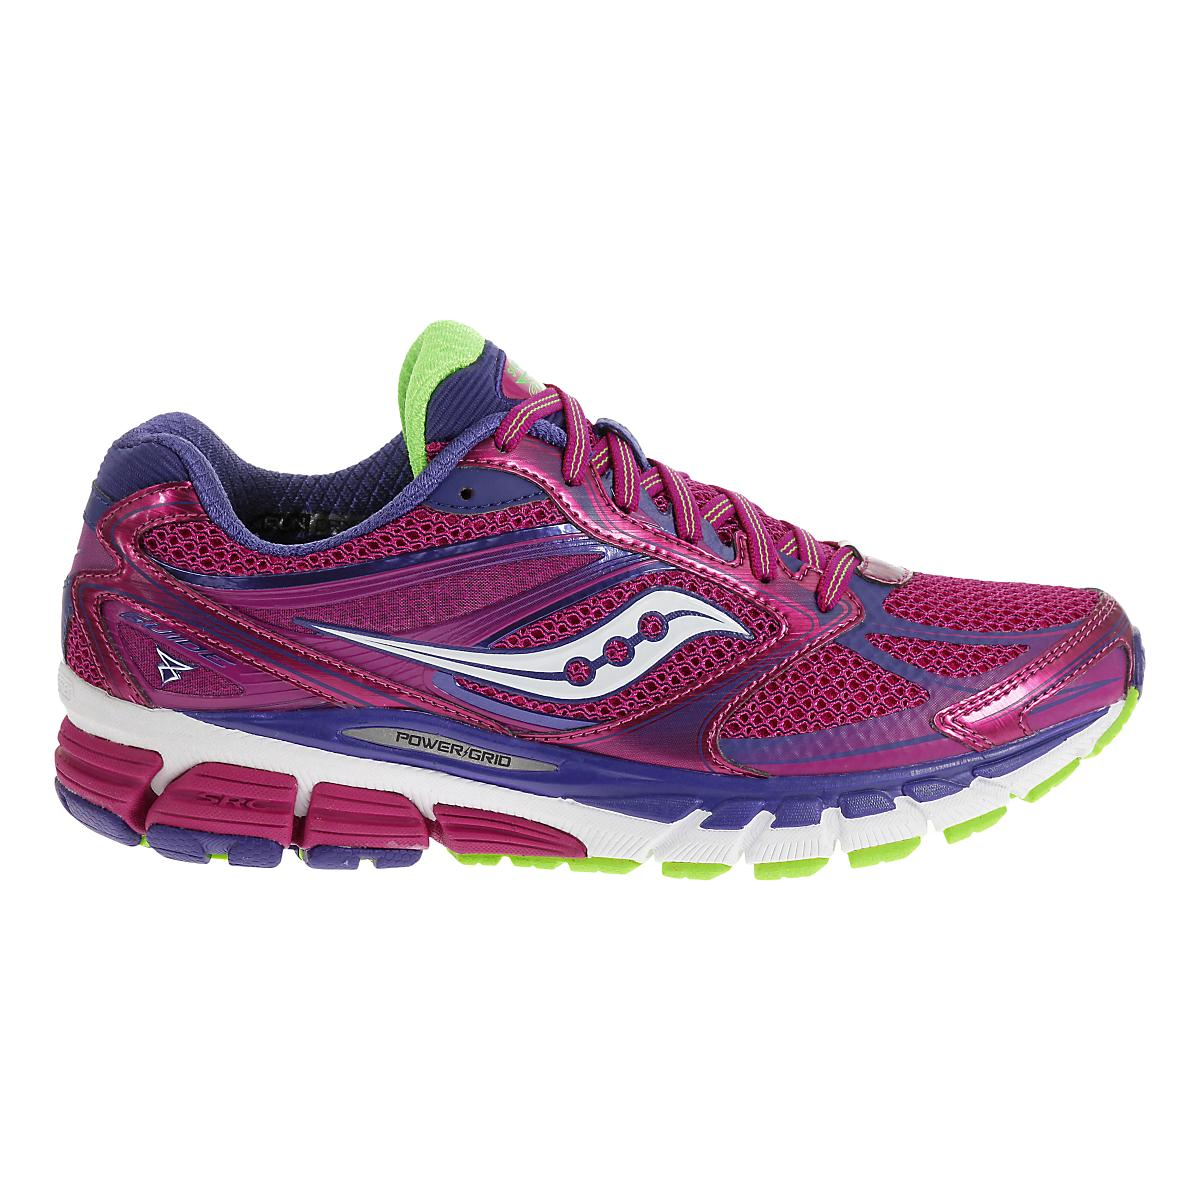 2d6c4688356b Womens Saucony Guide 8 Running Shoe at Road Runner Sports